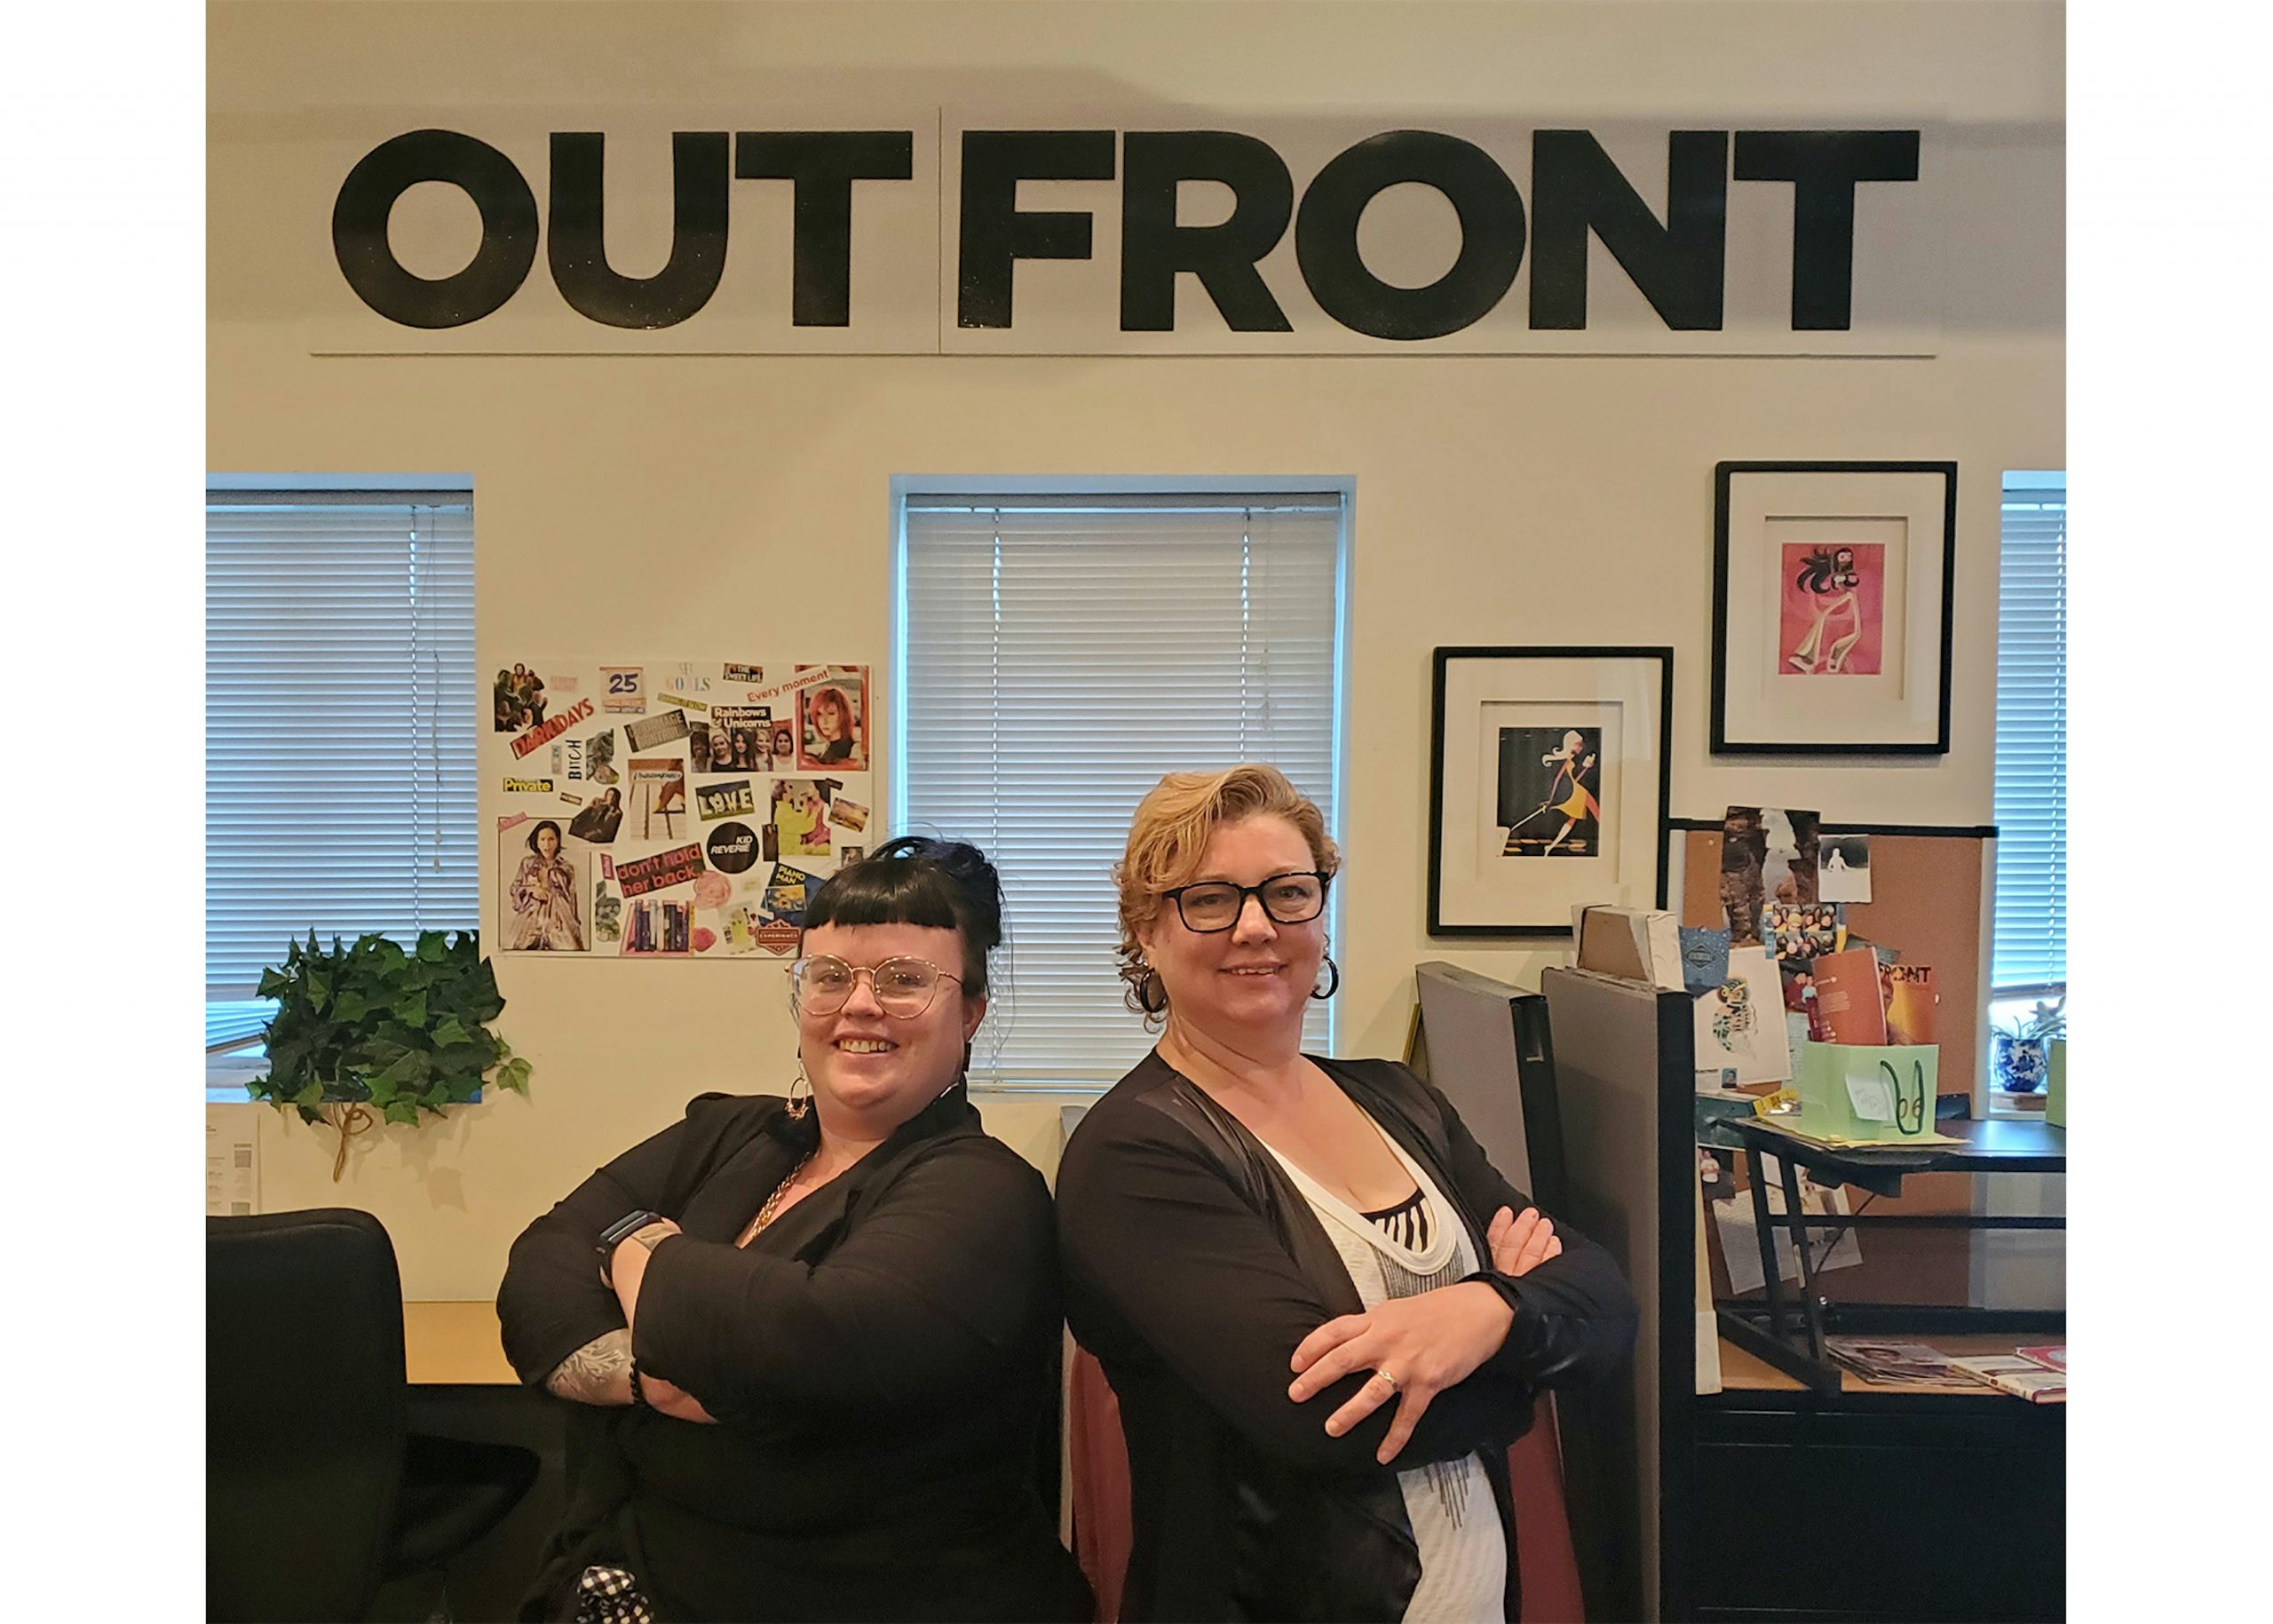 Out Front Magazine looks to the future under new female ownership